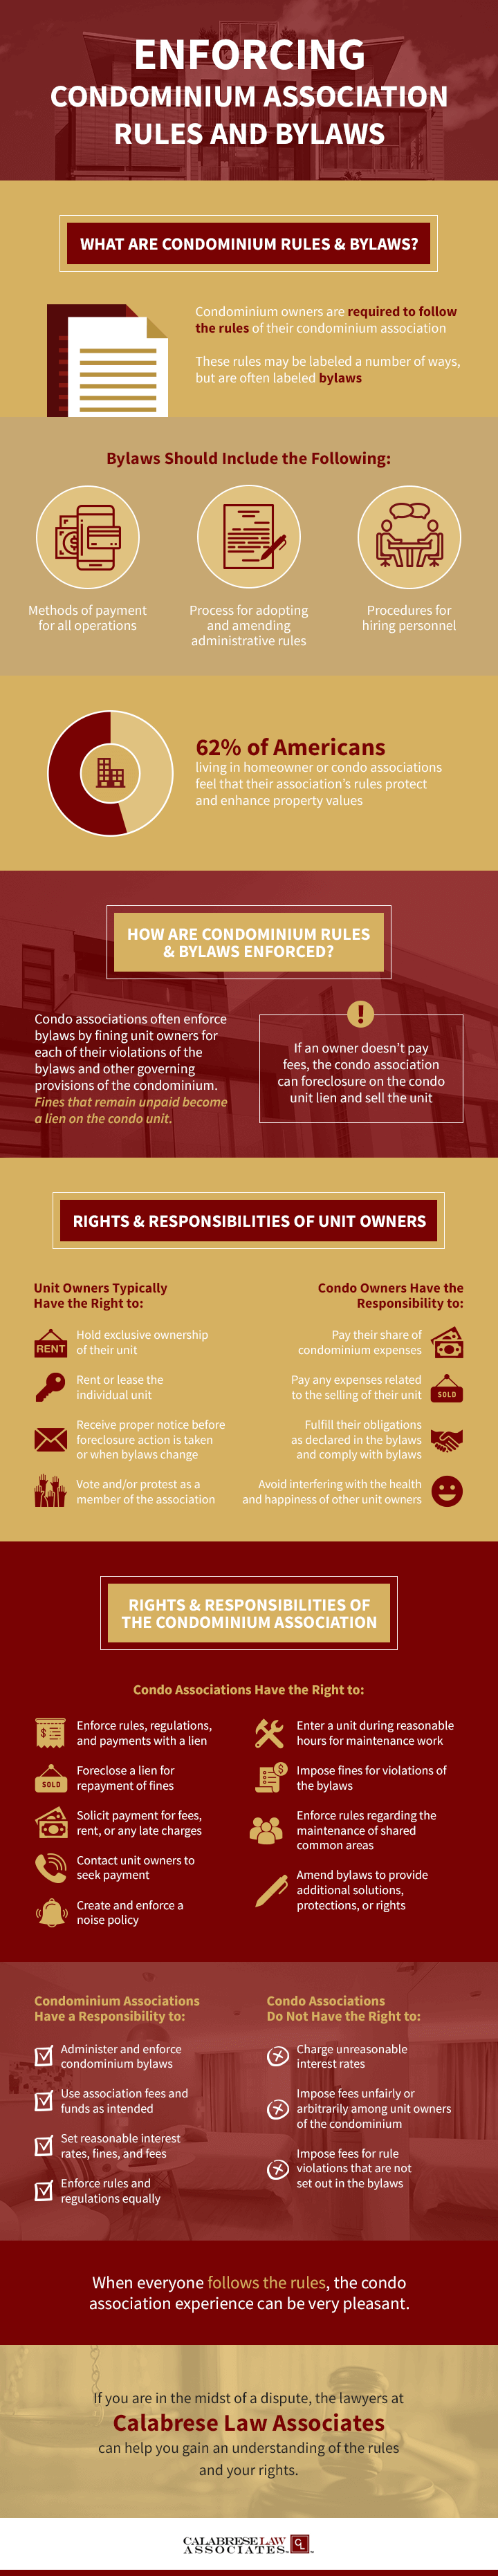 Enforcing Condominium Association Rules and Bylaws